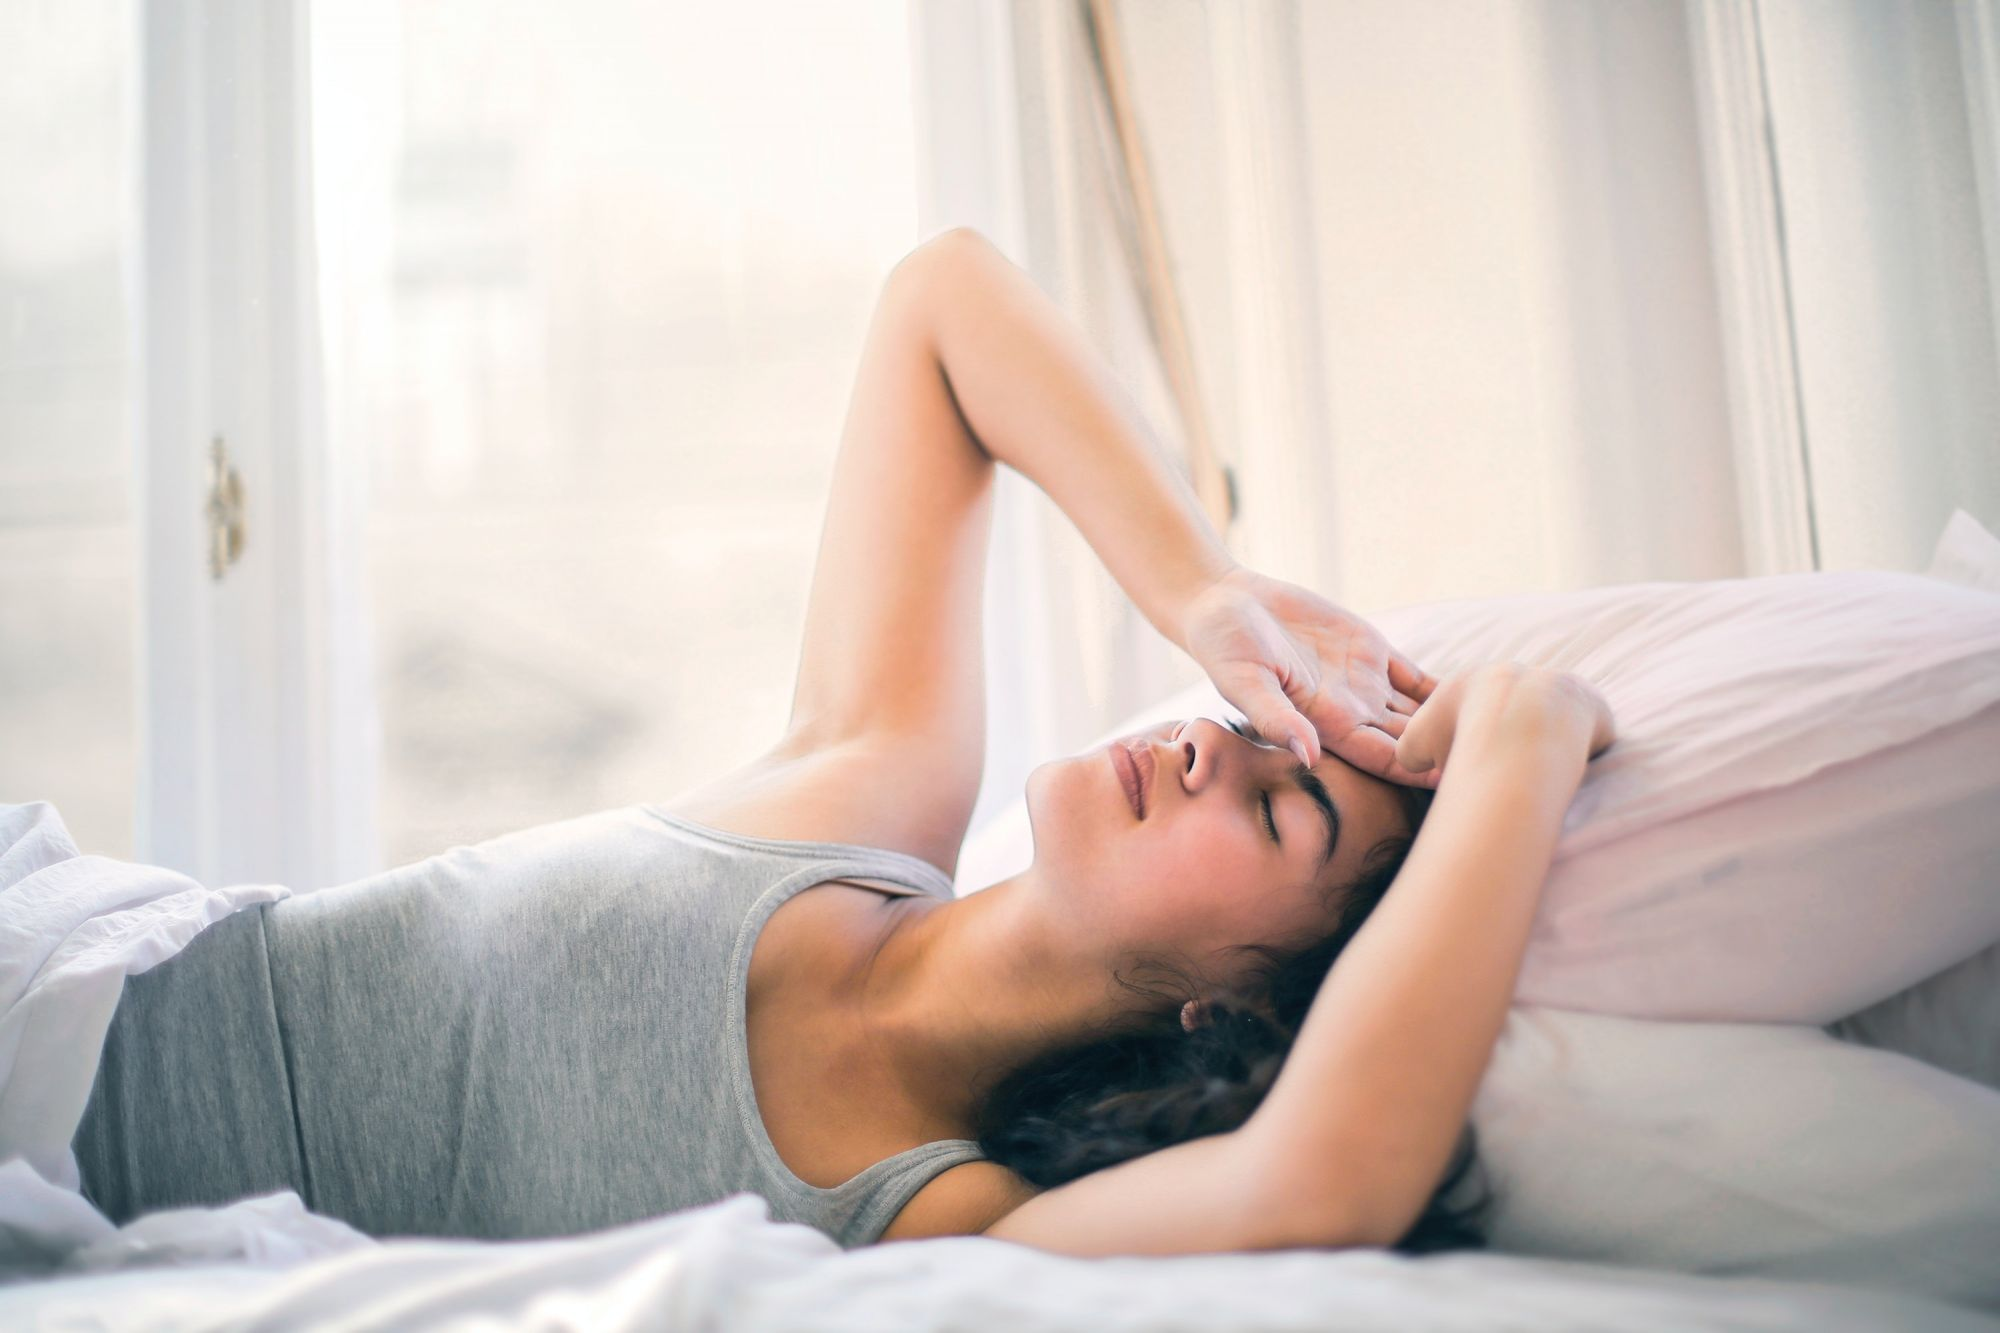 Battling Insomnia? Here Are 6 Tips To Improve The Way You Sleep Every Night